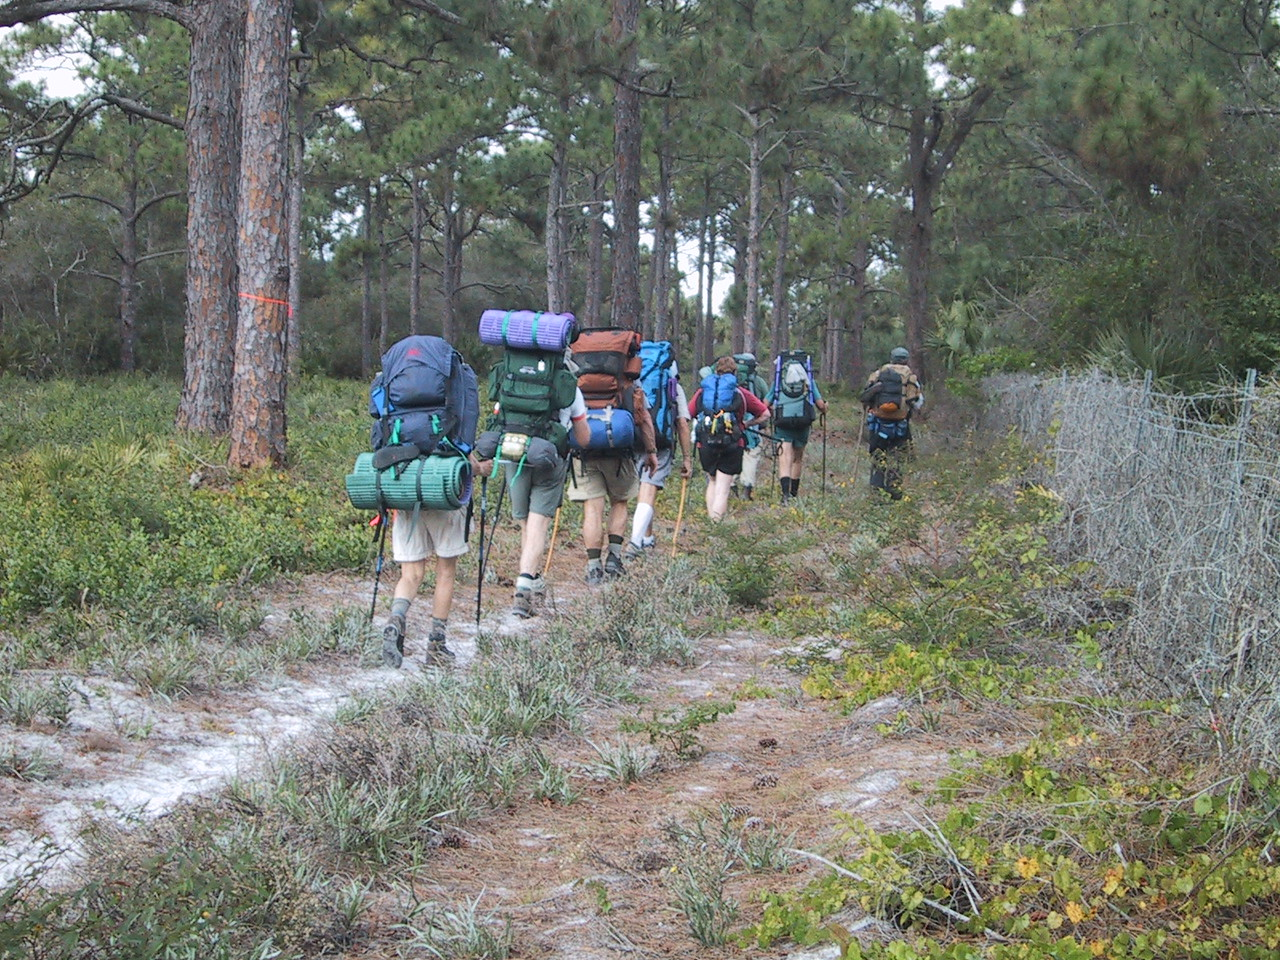 Backpackers on the annual Ocean to Lake Hike, Jonathan Dickinson State Park<br /> photo credit: Paul Guyon / Florida Trail Association